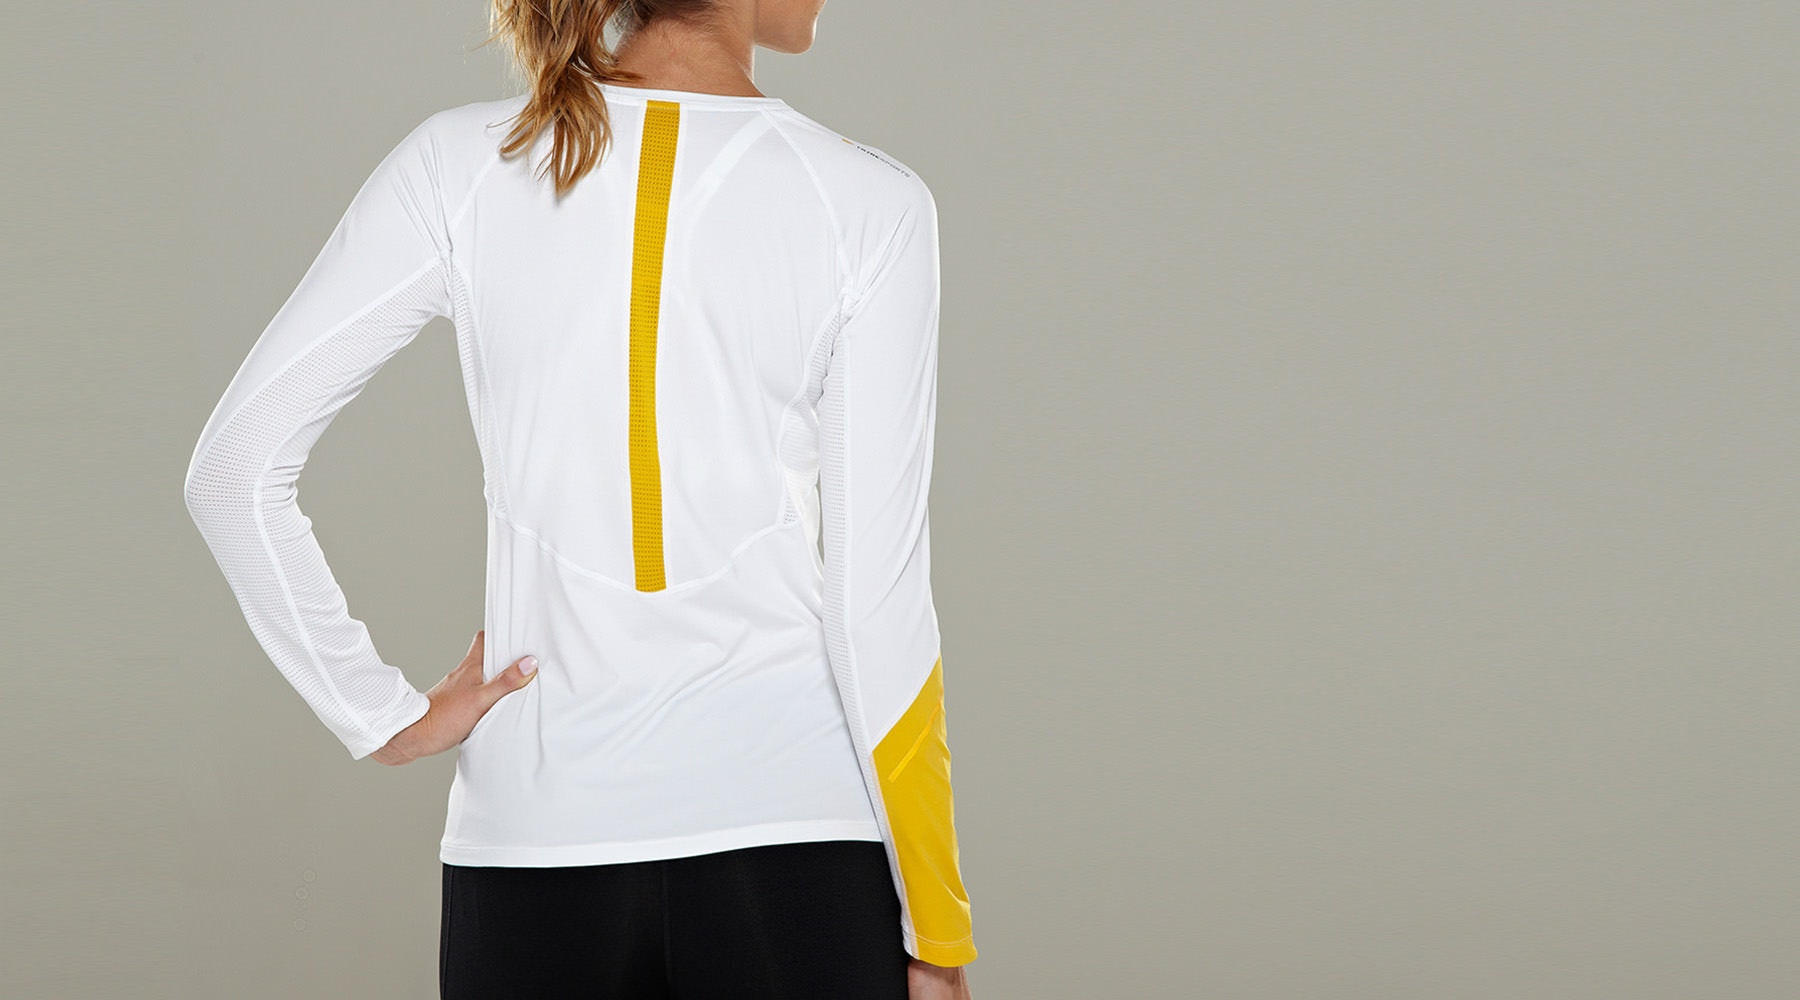 Tribesports Core Women's Long Sleeve Top White  5